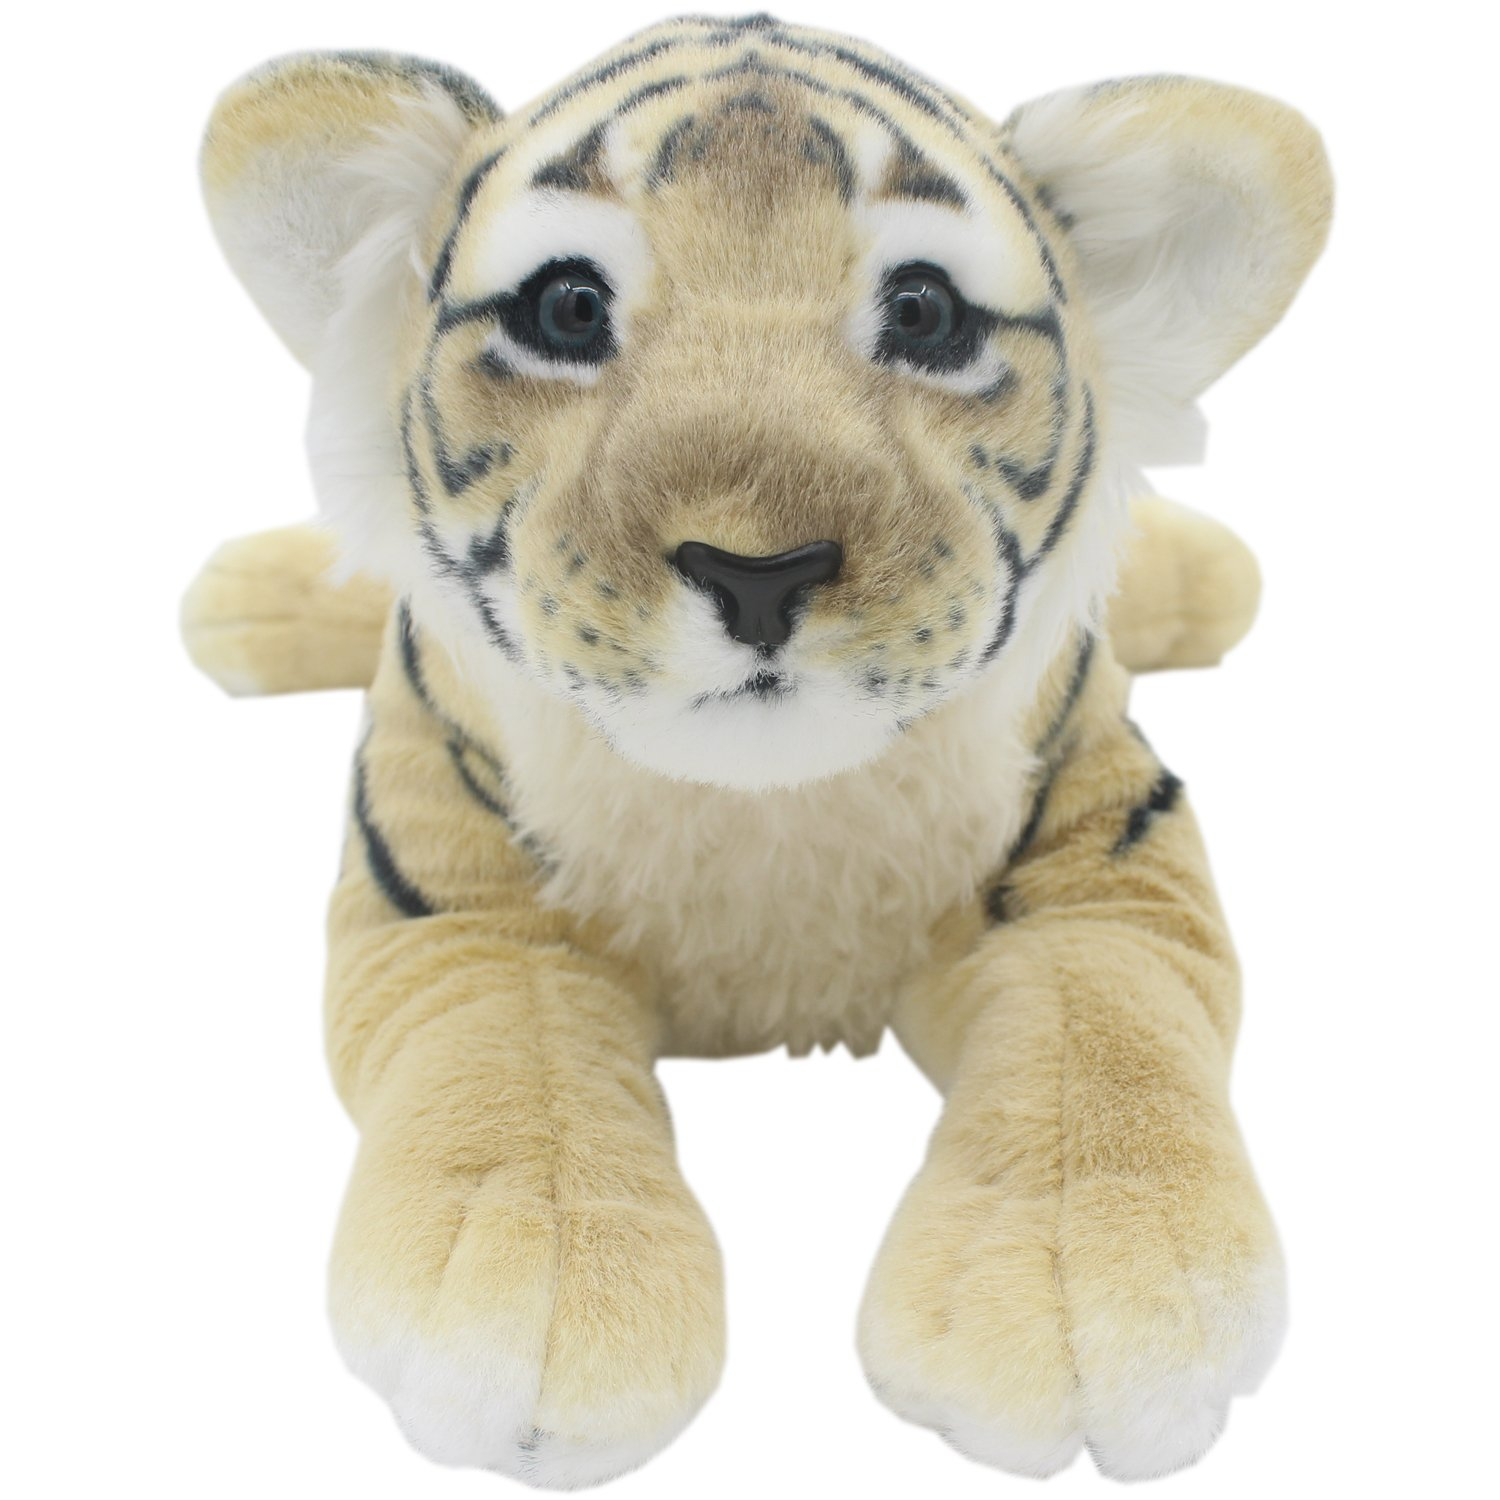 TAGLN The Jungle Animals Stuffed Plush Toys Tiger Leopard Panther Lioness Pillows (Brown Tiger, 16 Inch) by TAGLN